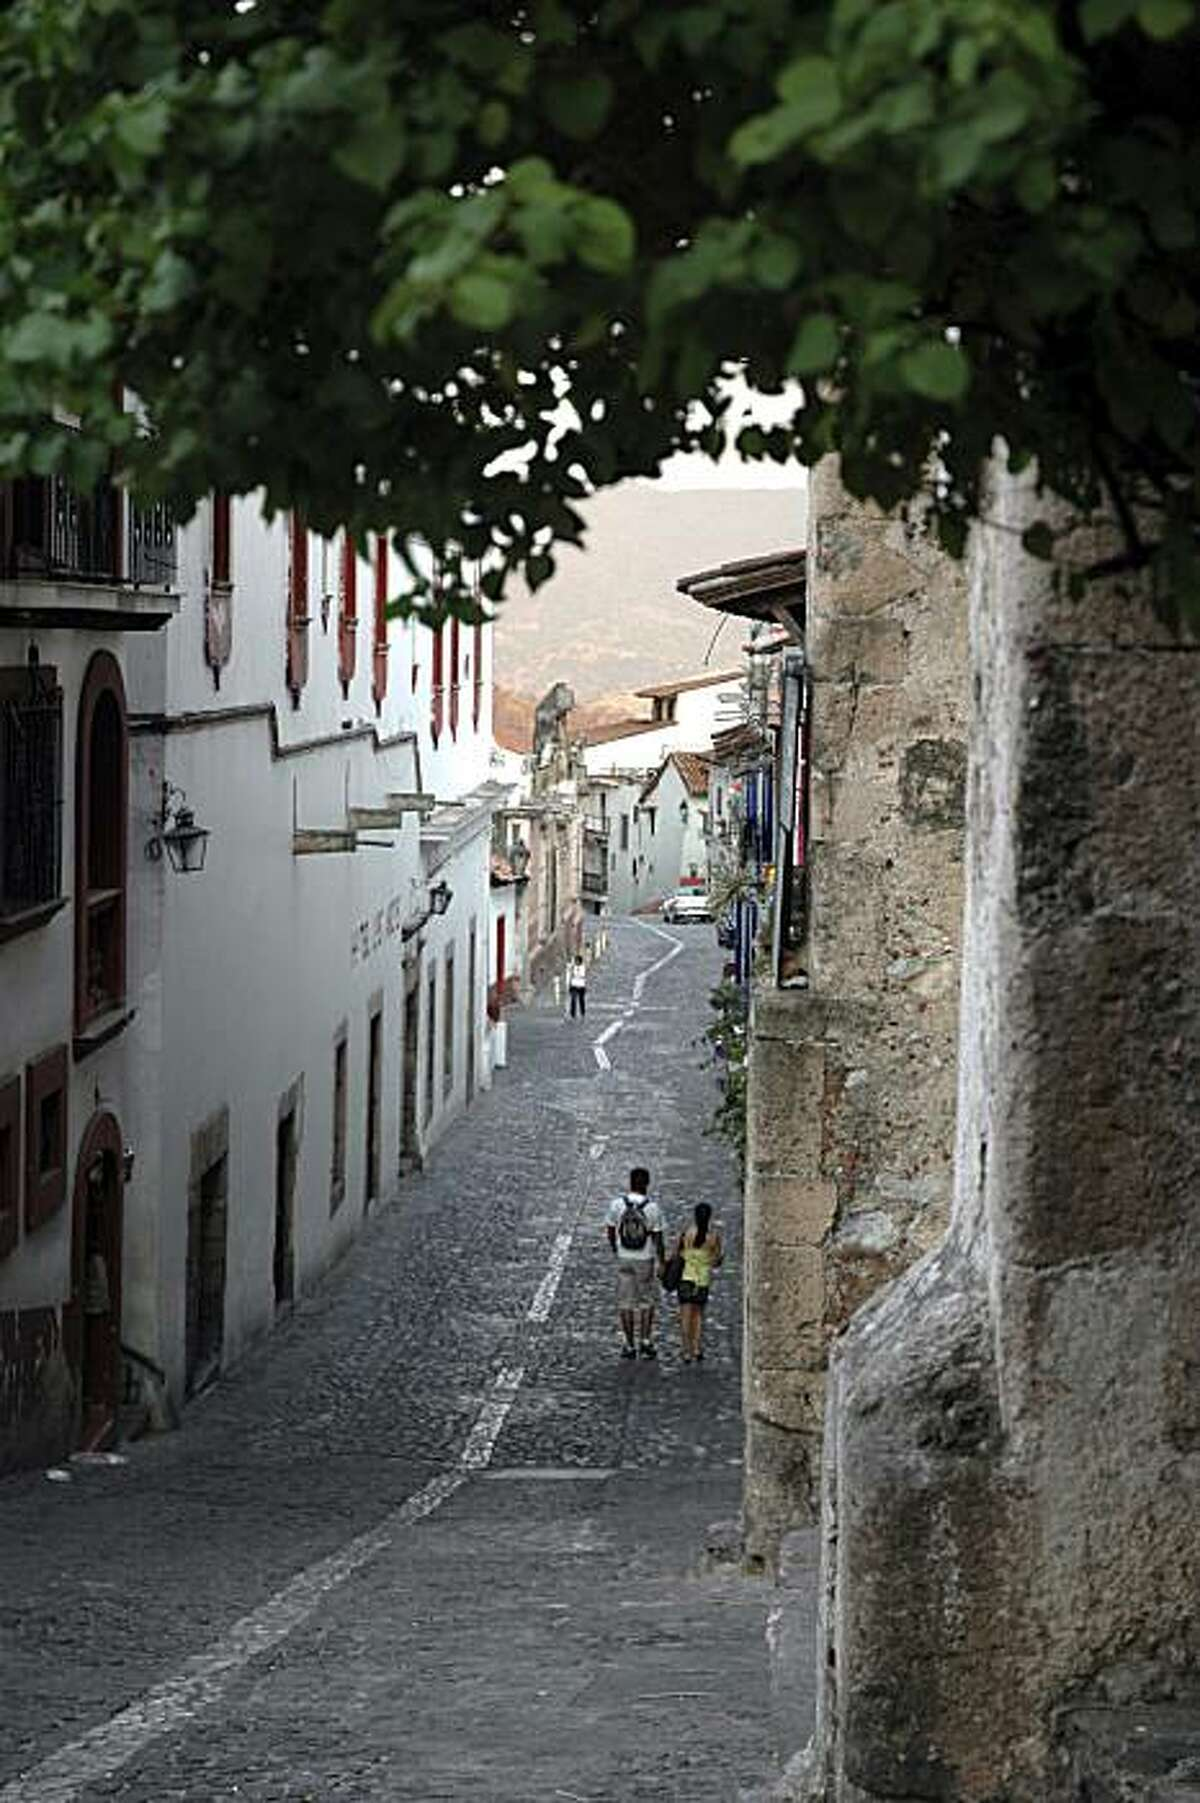 Taxco, Guerrero, Mexico - Steep, narrow streets surrounded by hills.